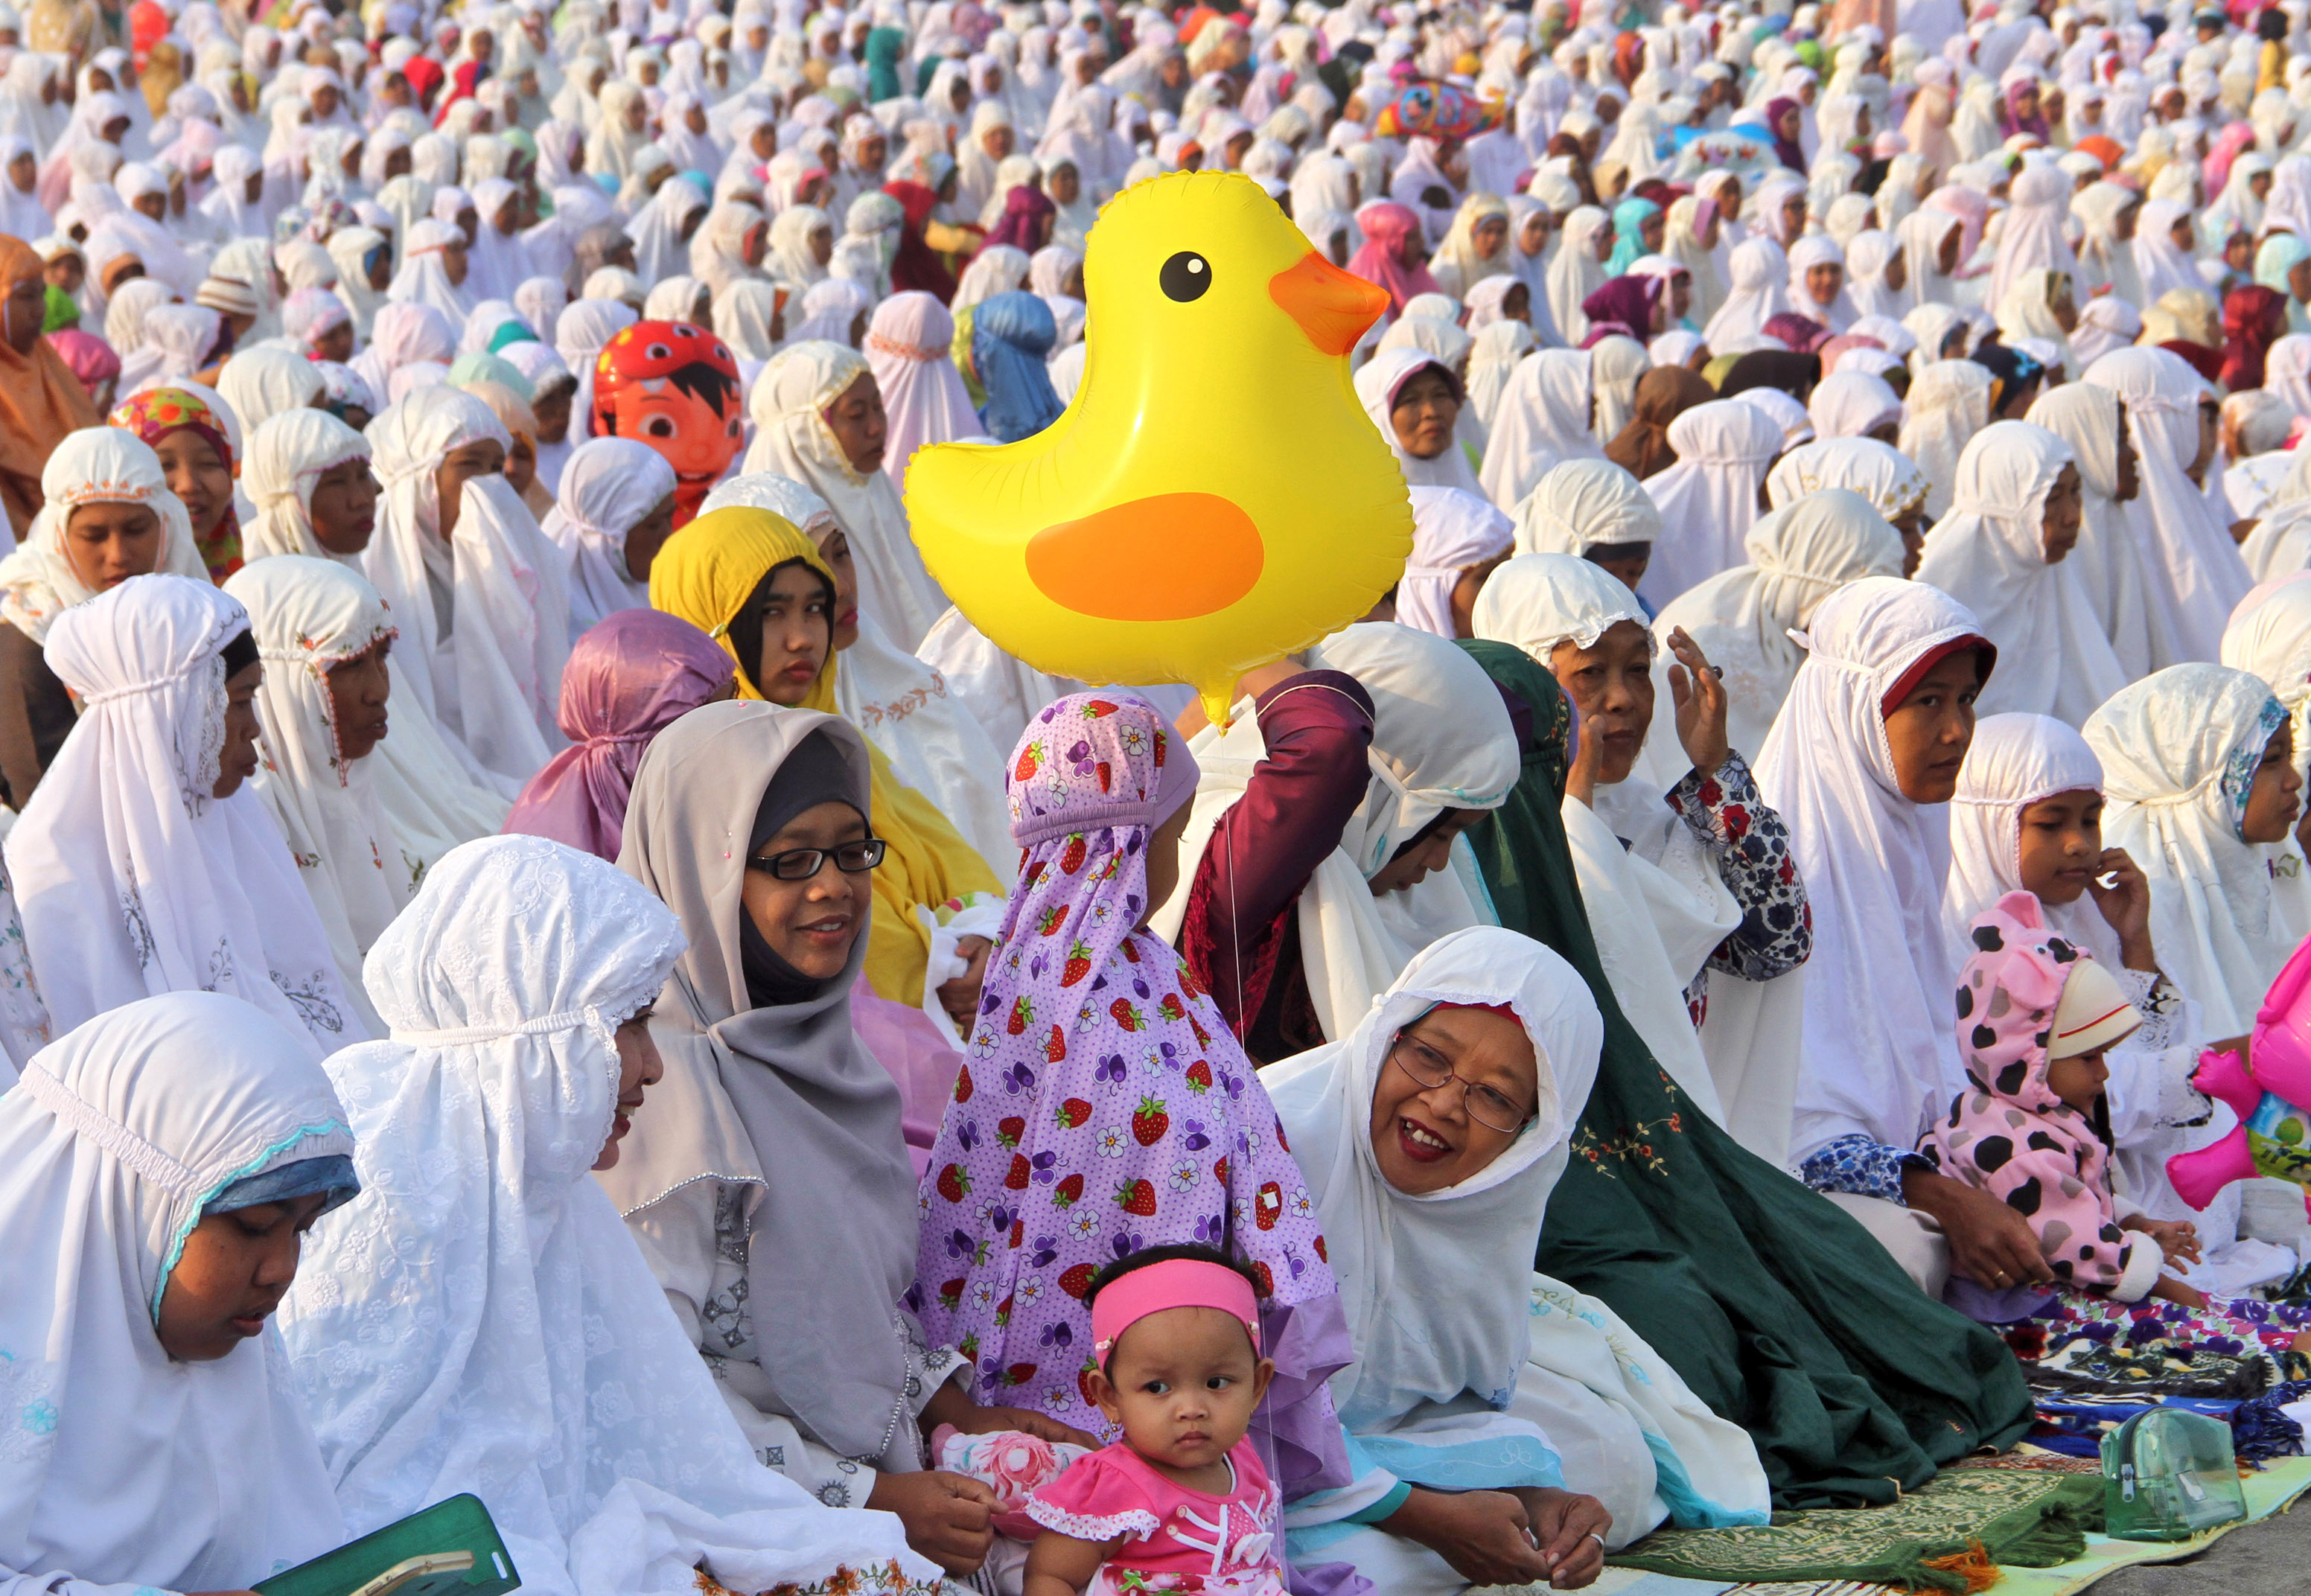 Muslims around the world celebrate Eid al-Fitr | | Al Jazeera